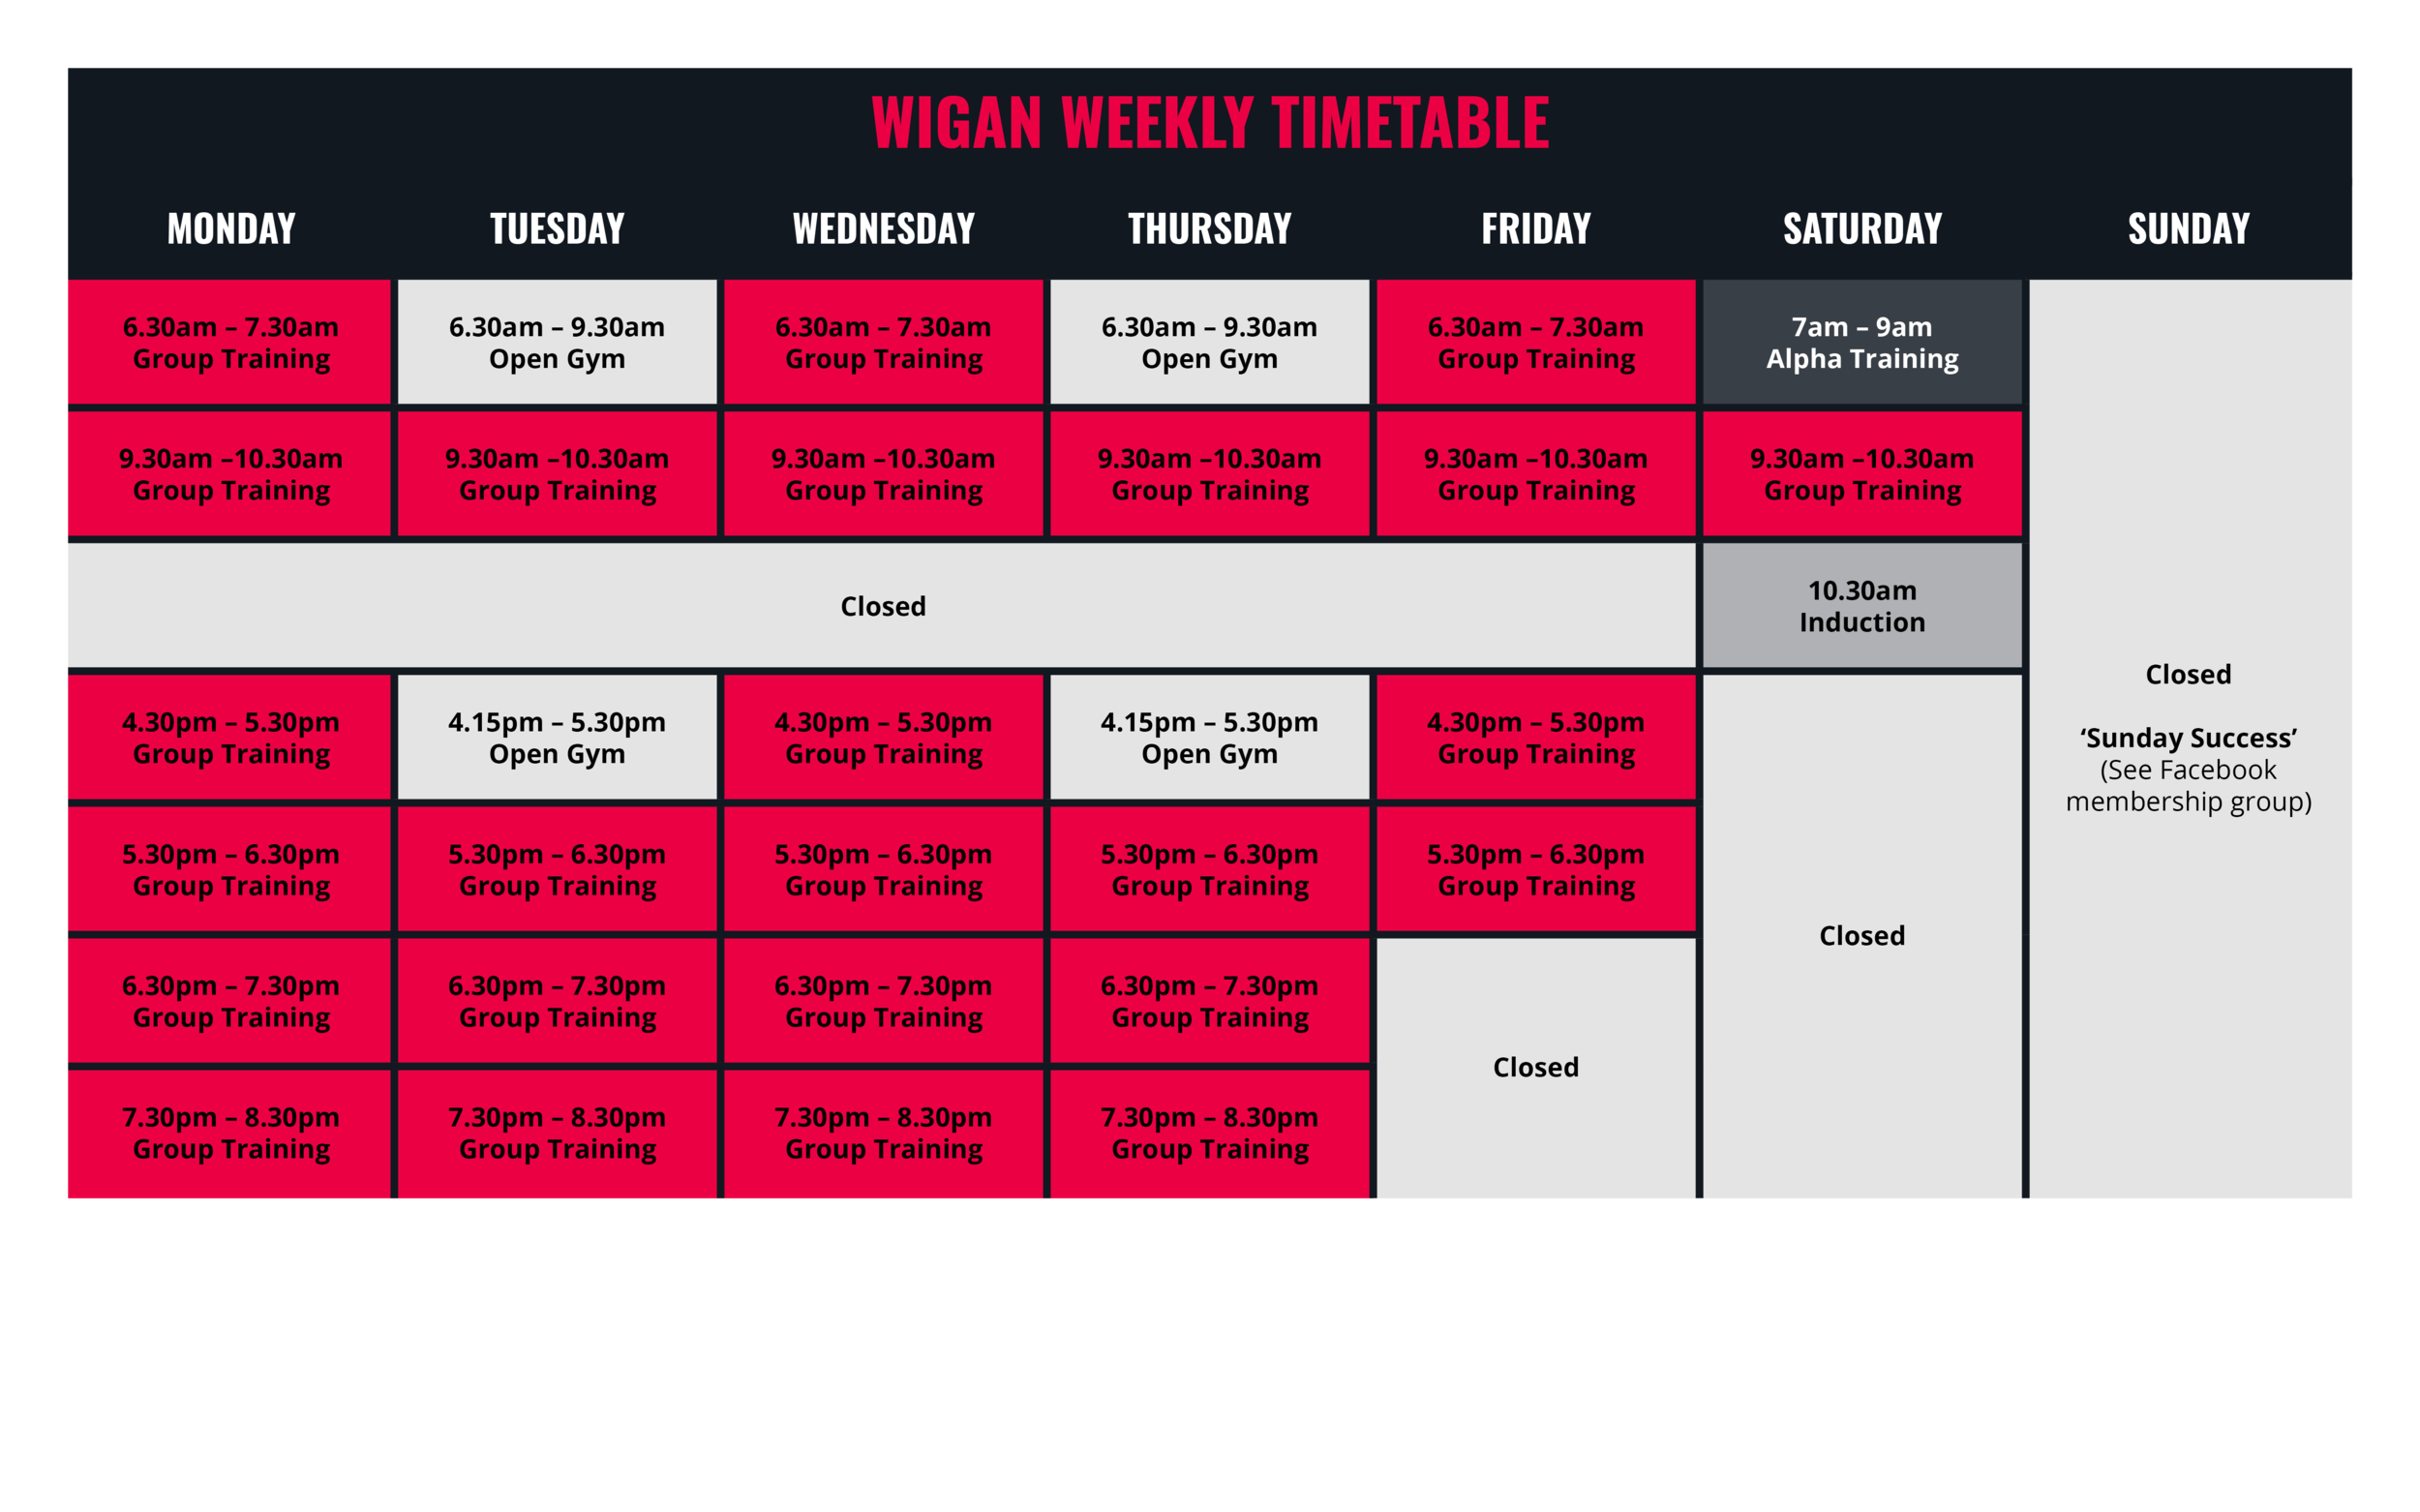 Wigan Timetable.png